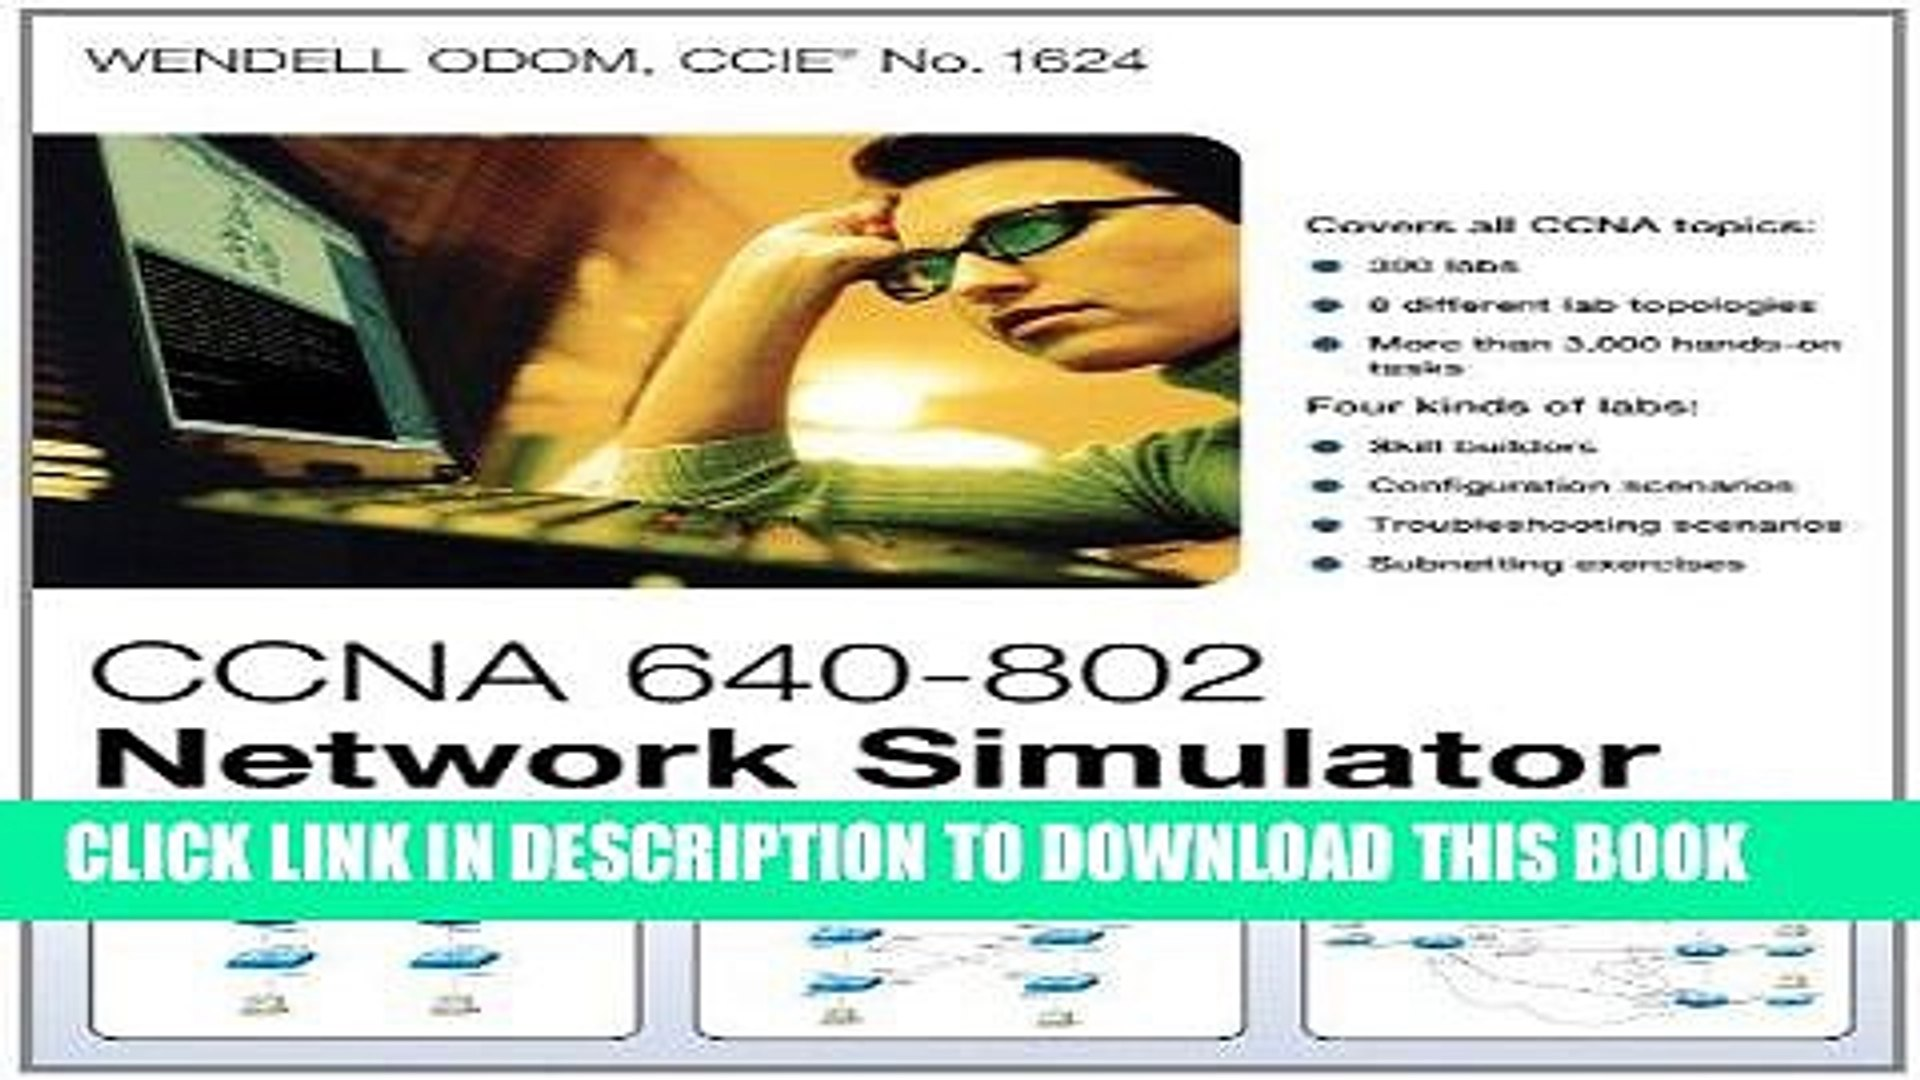 [PDF] FREE CCNA 640-802 Network Simulator (2nd Edition) [Download] Online